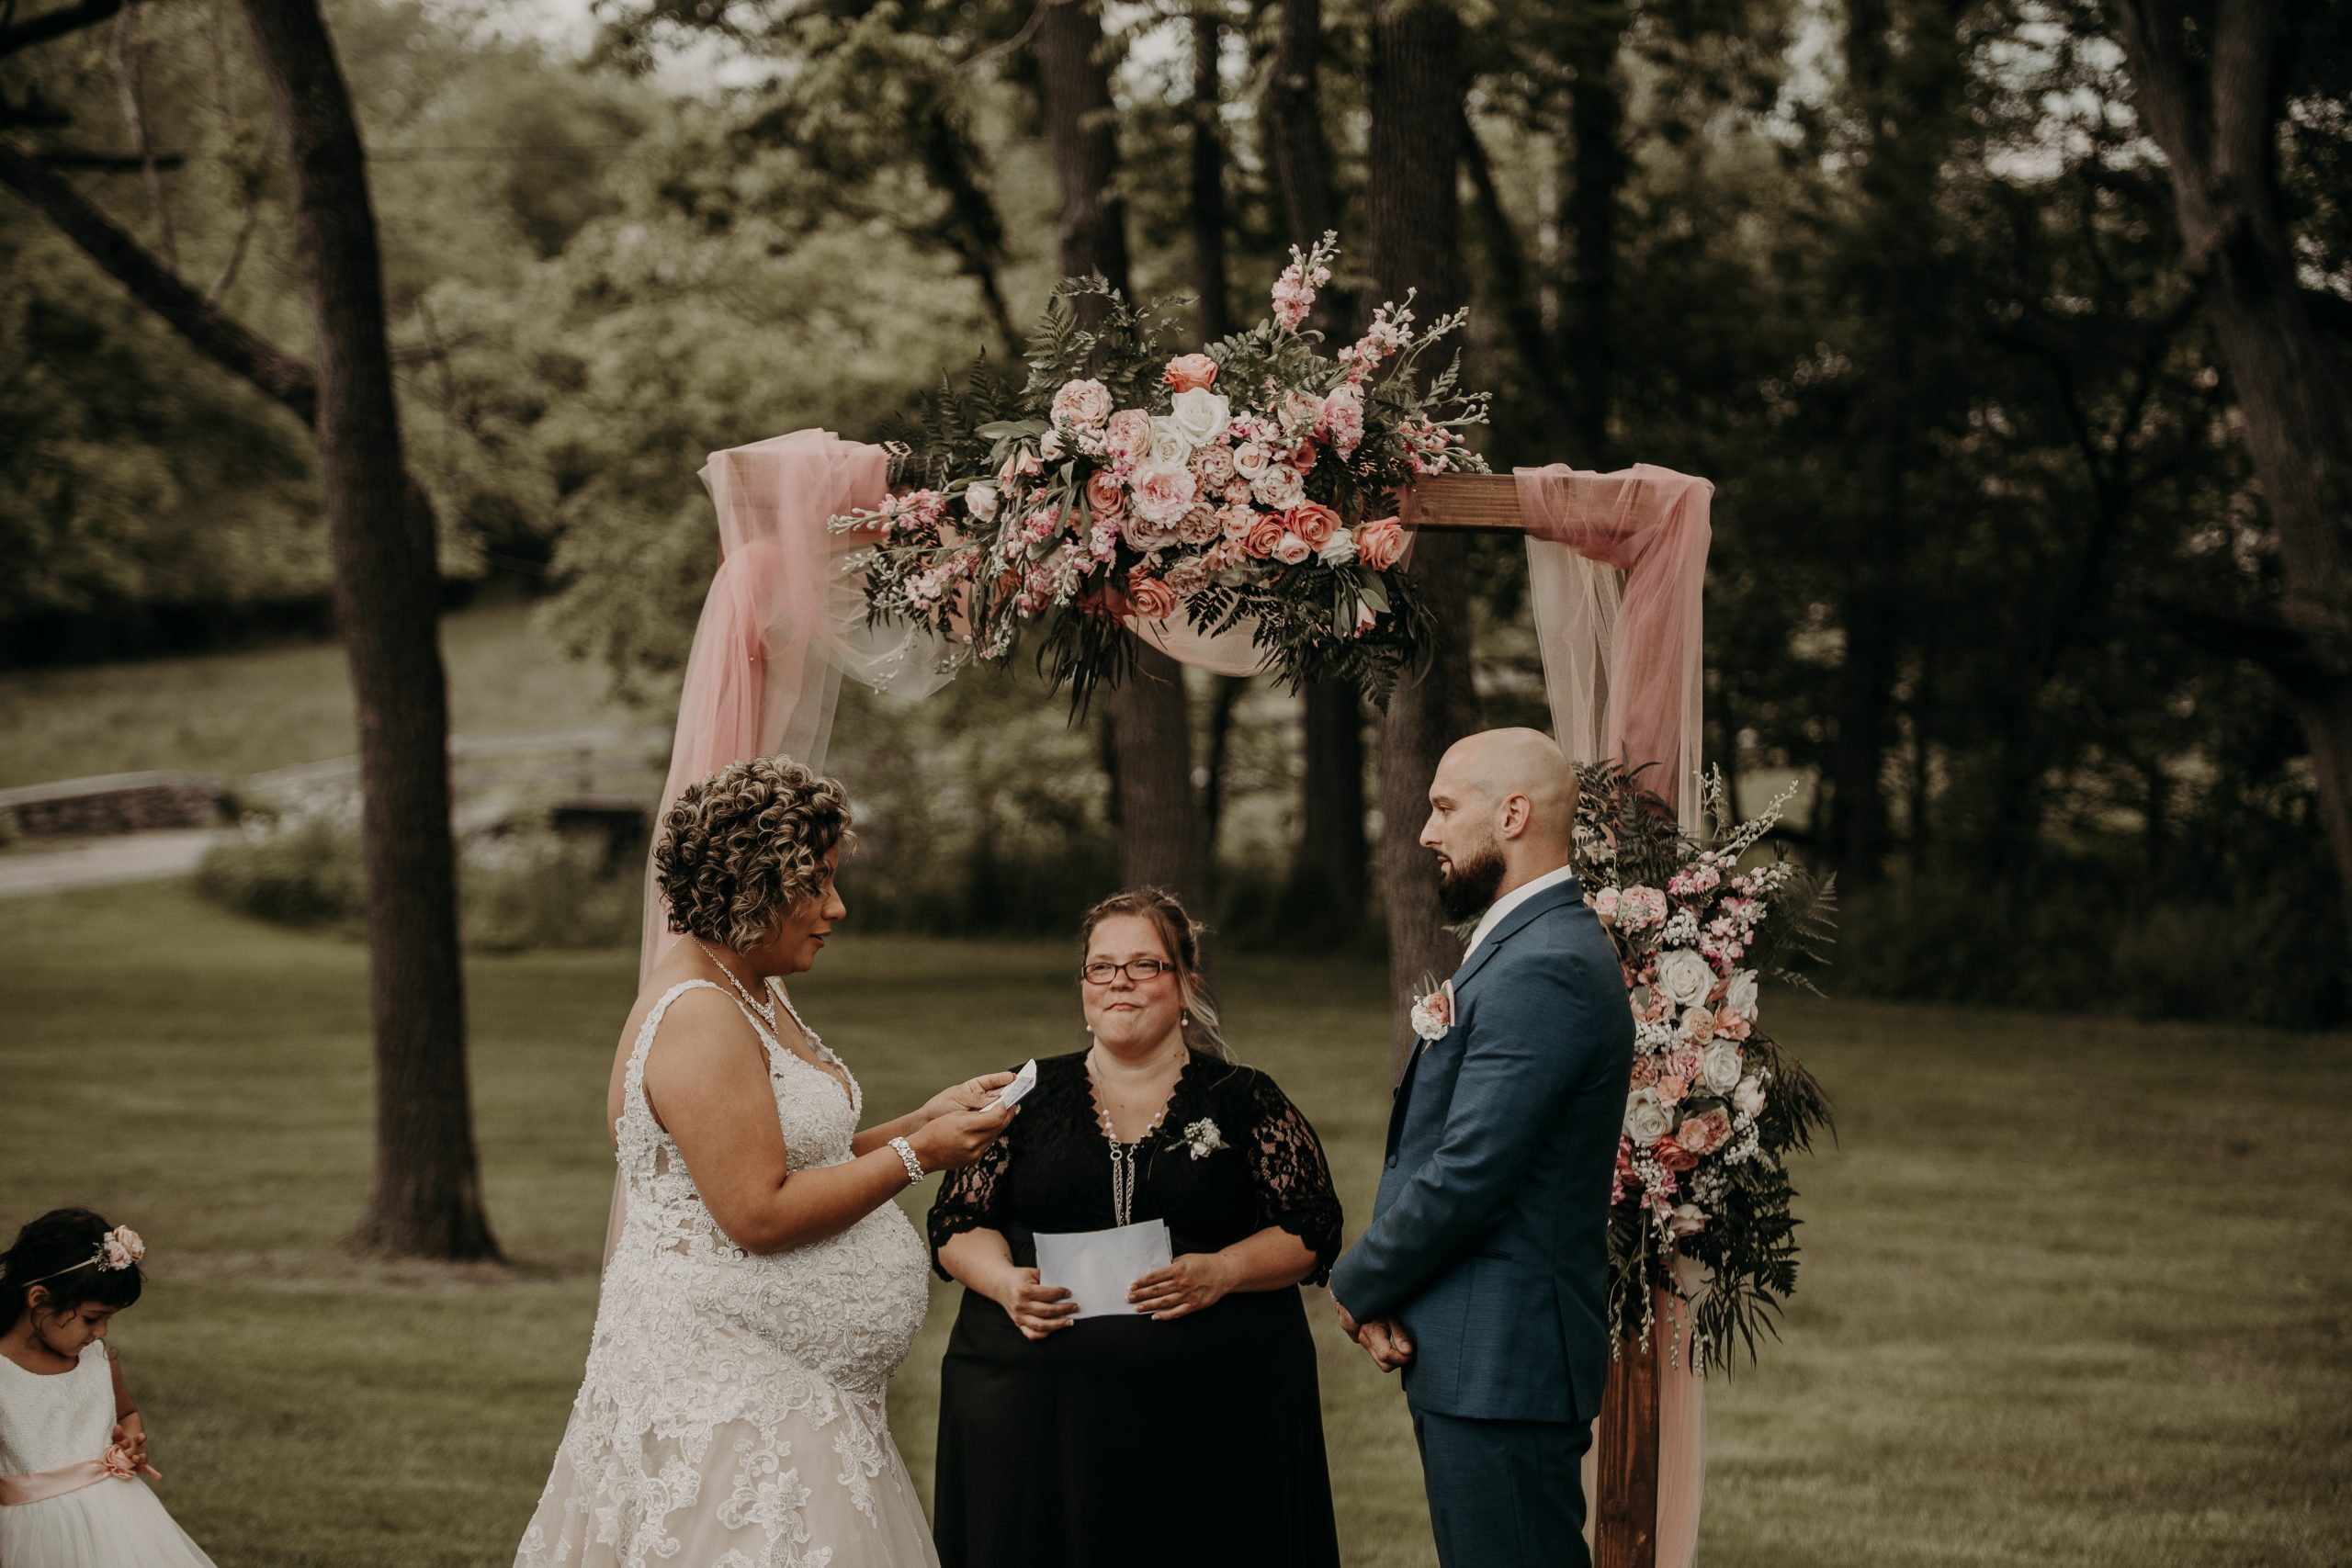 christine starts off with the vow reading and Richard is in awe of her. Christine and Richard wed on the Chestnut Hill Villa grounds on May of 2019. This organic ethereal styled wedding was captured by Garnet Dahlia Photography and featured on Dream Weddings.